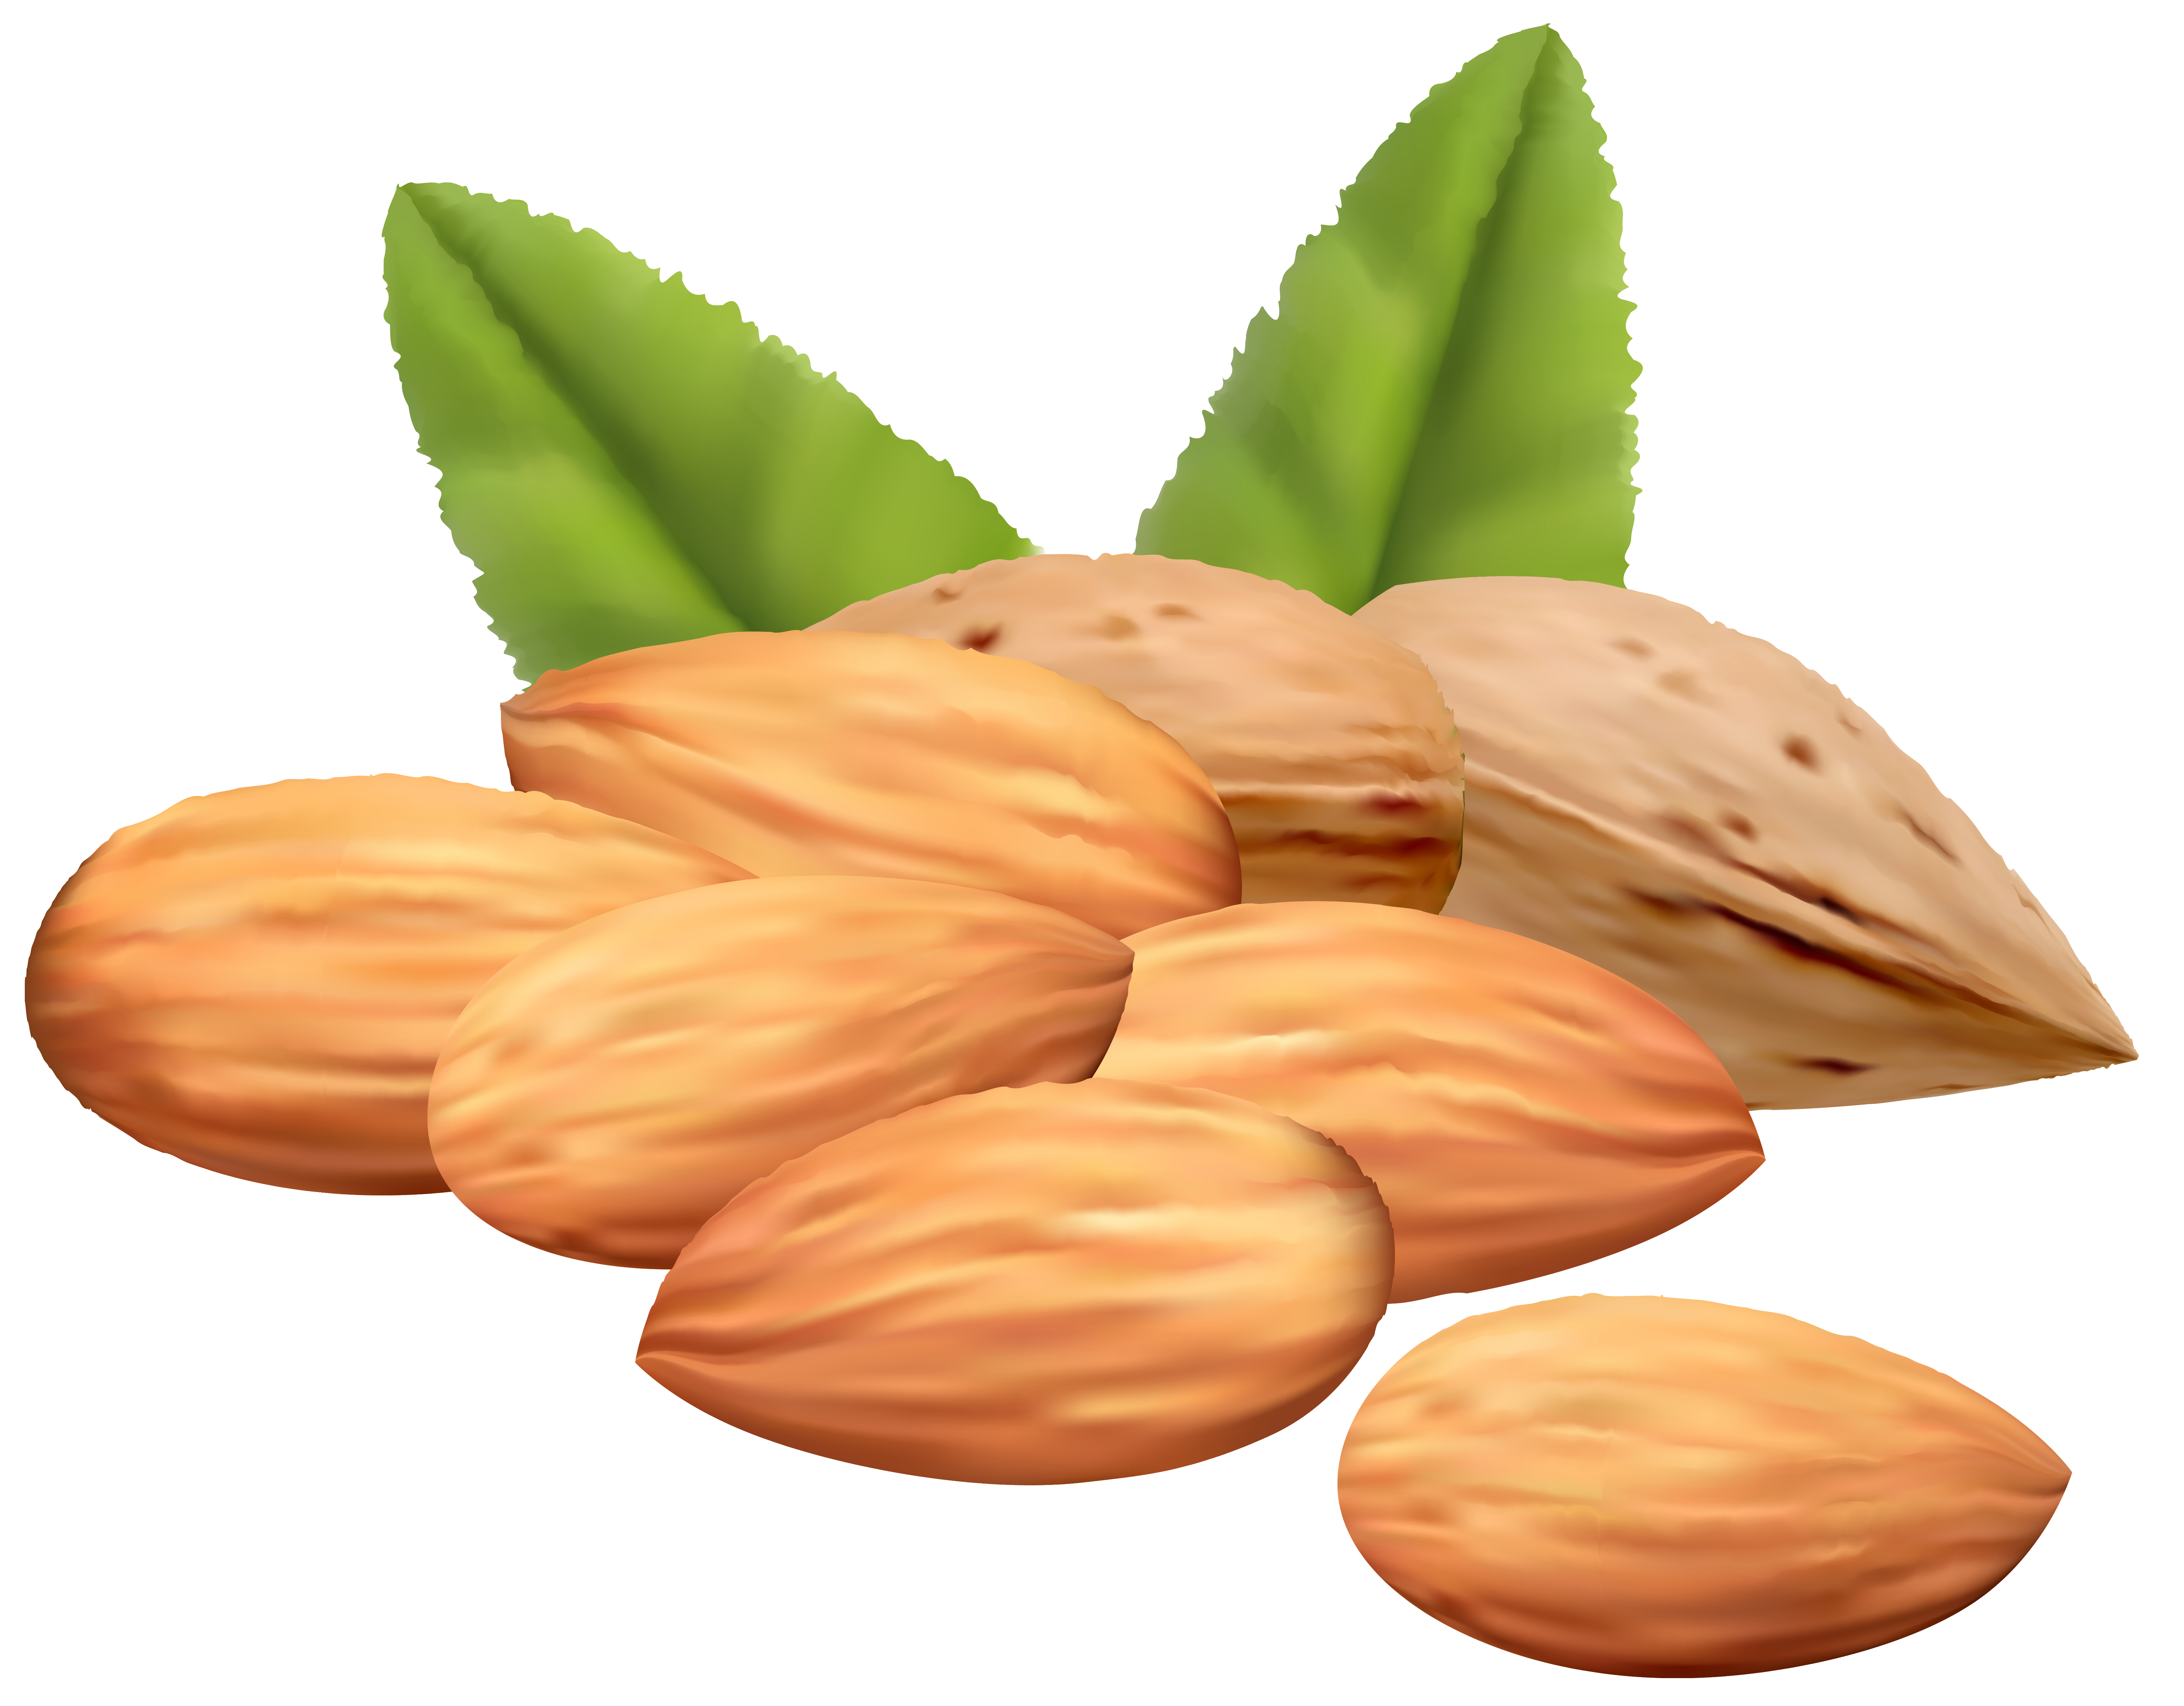 Almond nuts png image. Nut clipart hindi